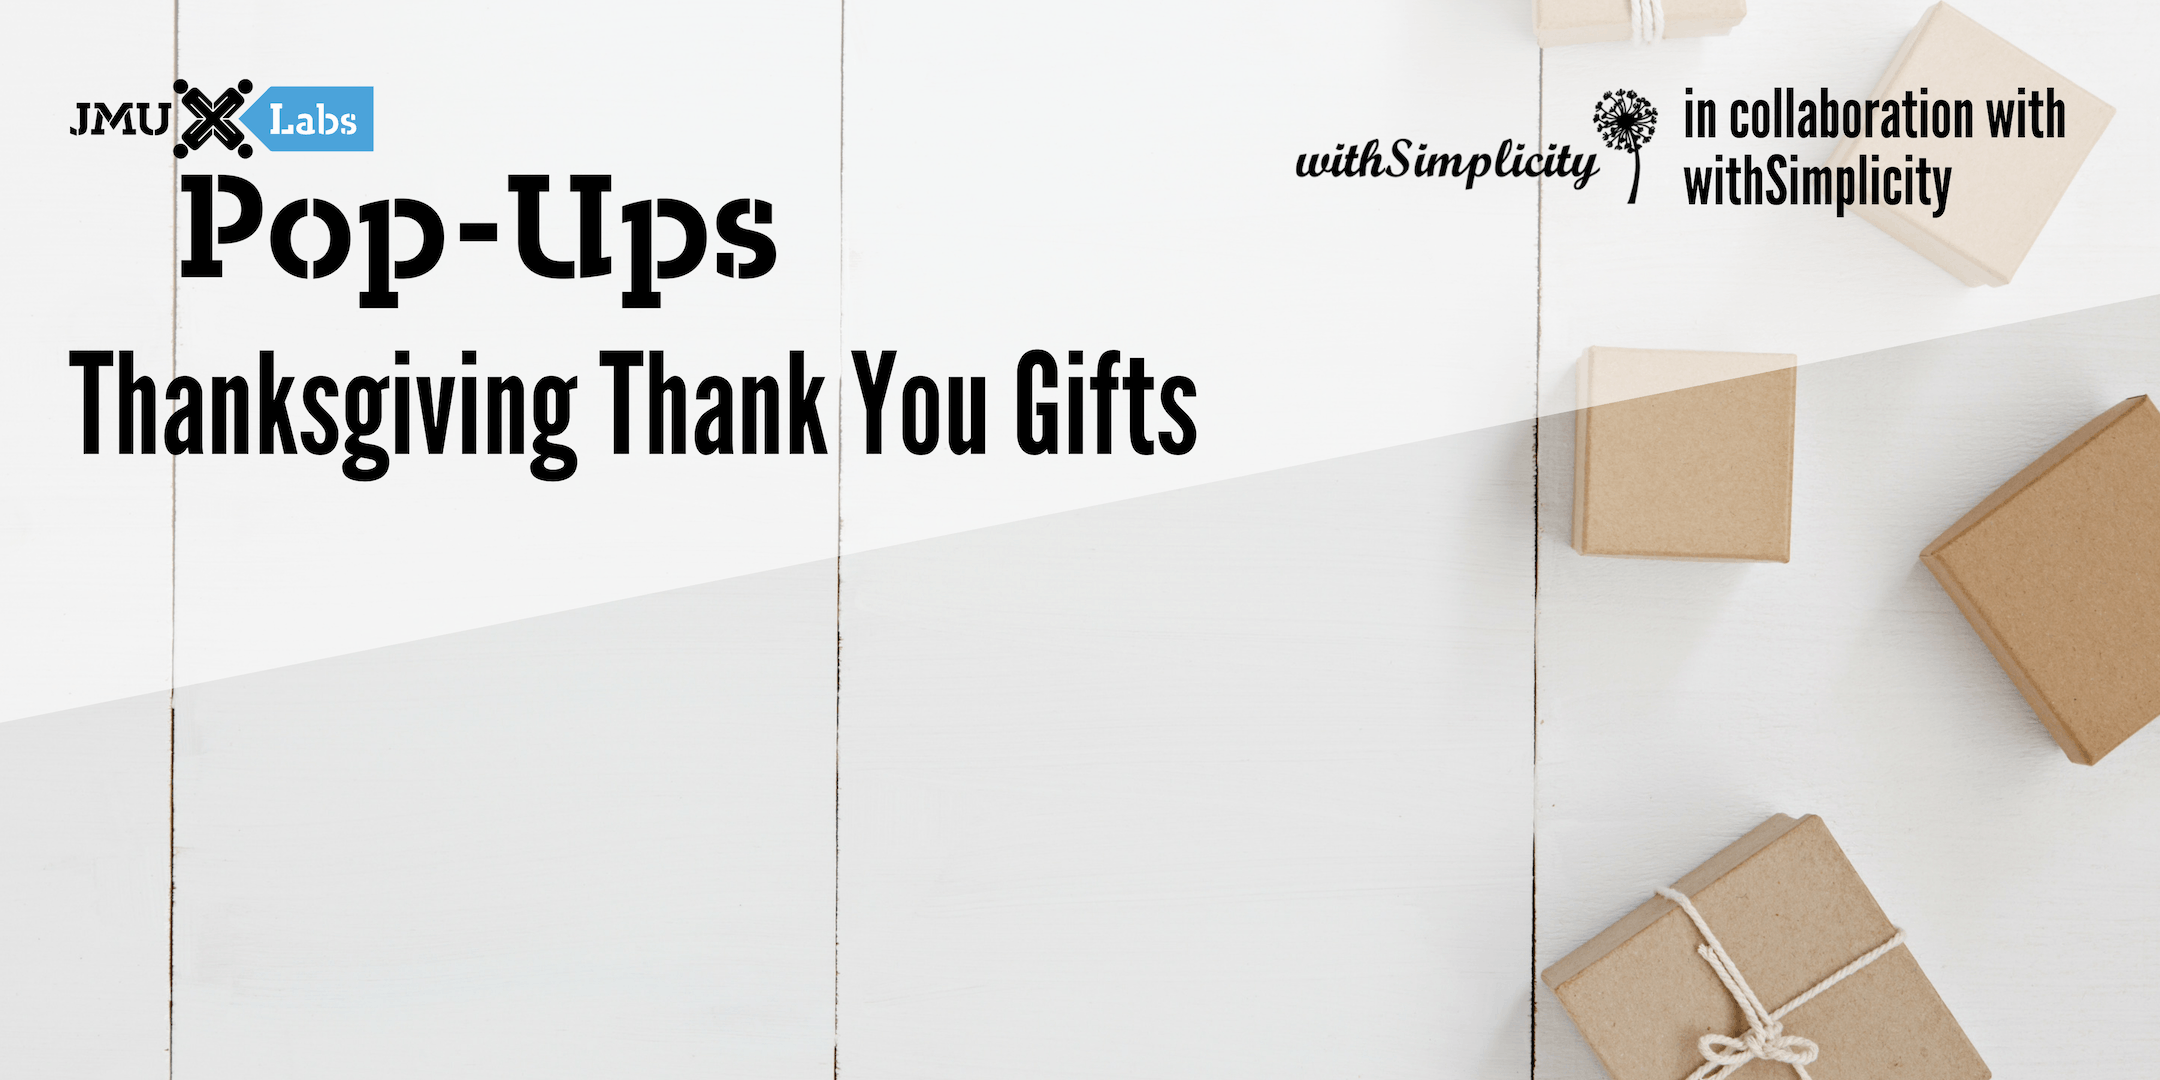 Pop-Up Workshop: Thanksgiving Thank You Gifts featuring withSimplicity